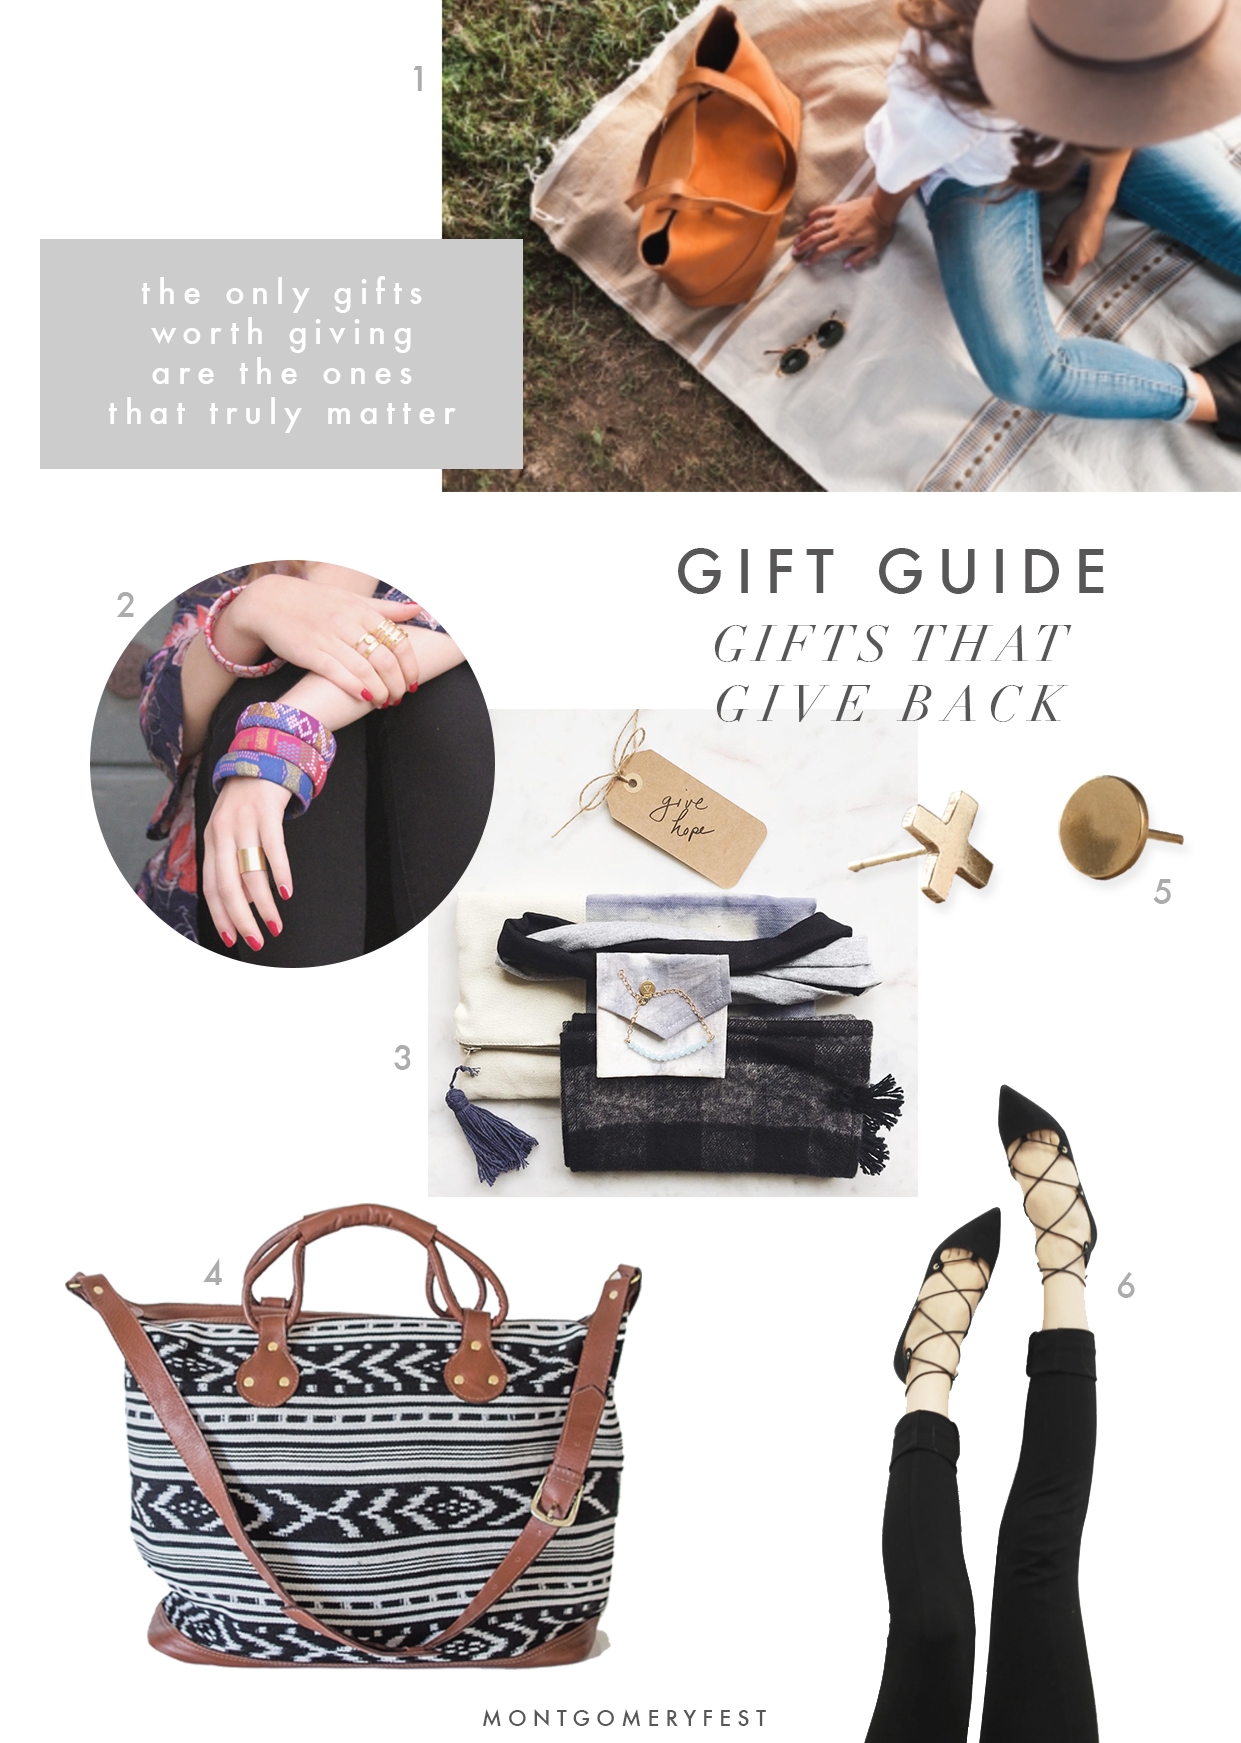 gifts-that-give-back-guide.jpg